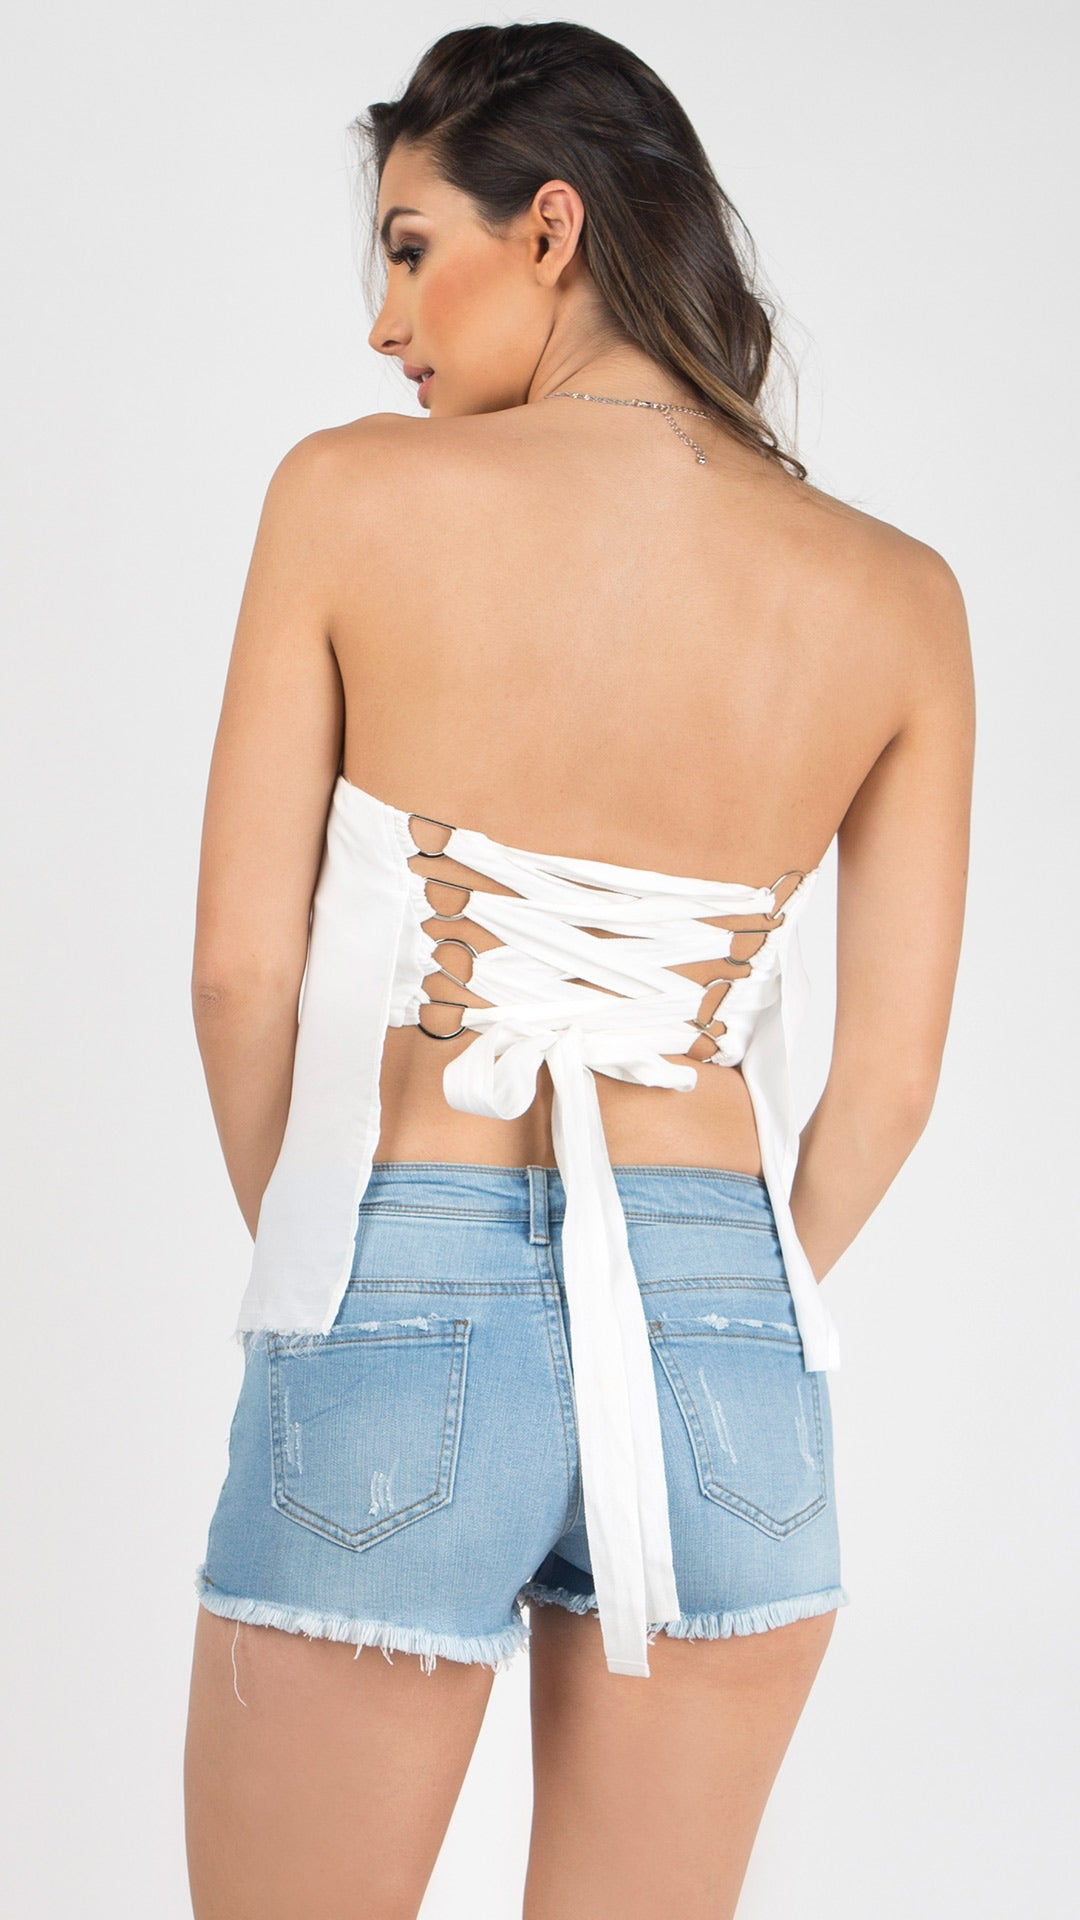 69b6273c352 Angel Lace Up Tube Top - ANGL